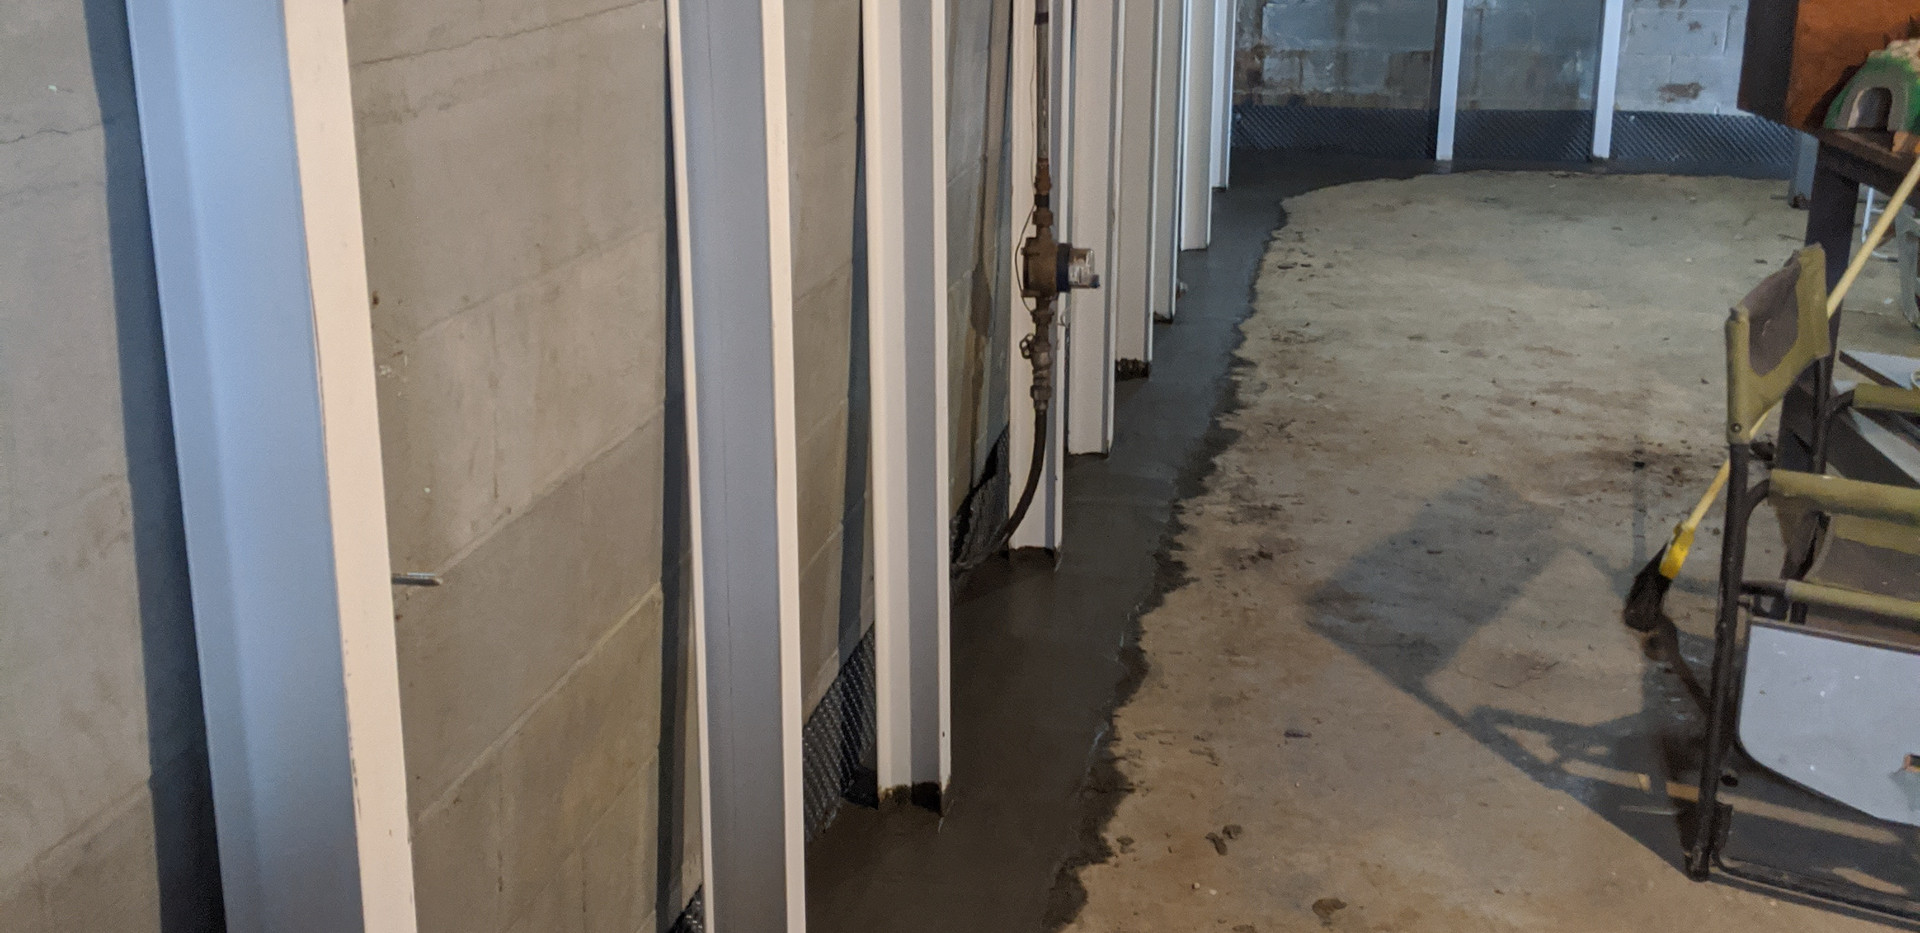 Waterproofing project with installation of steel ibeams for stabilization